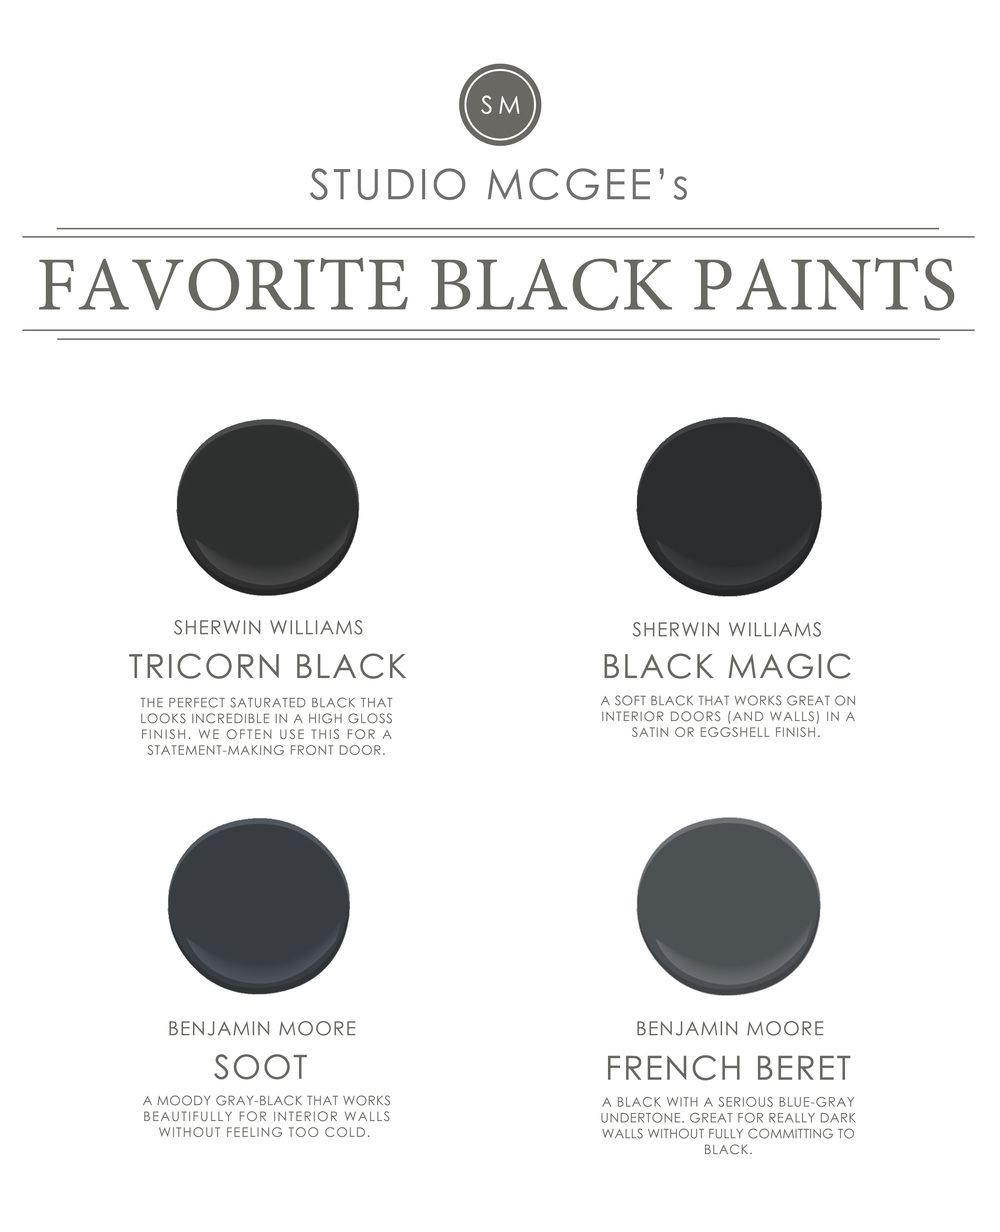 Ask Studio McGee: Our Favorite Black Paints